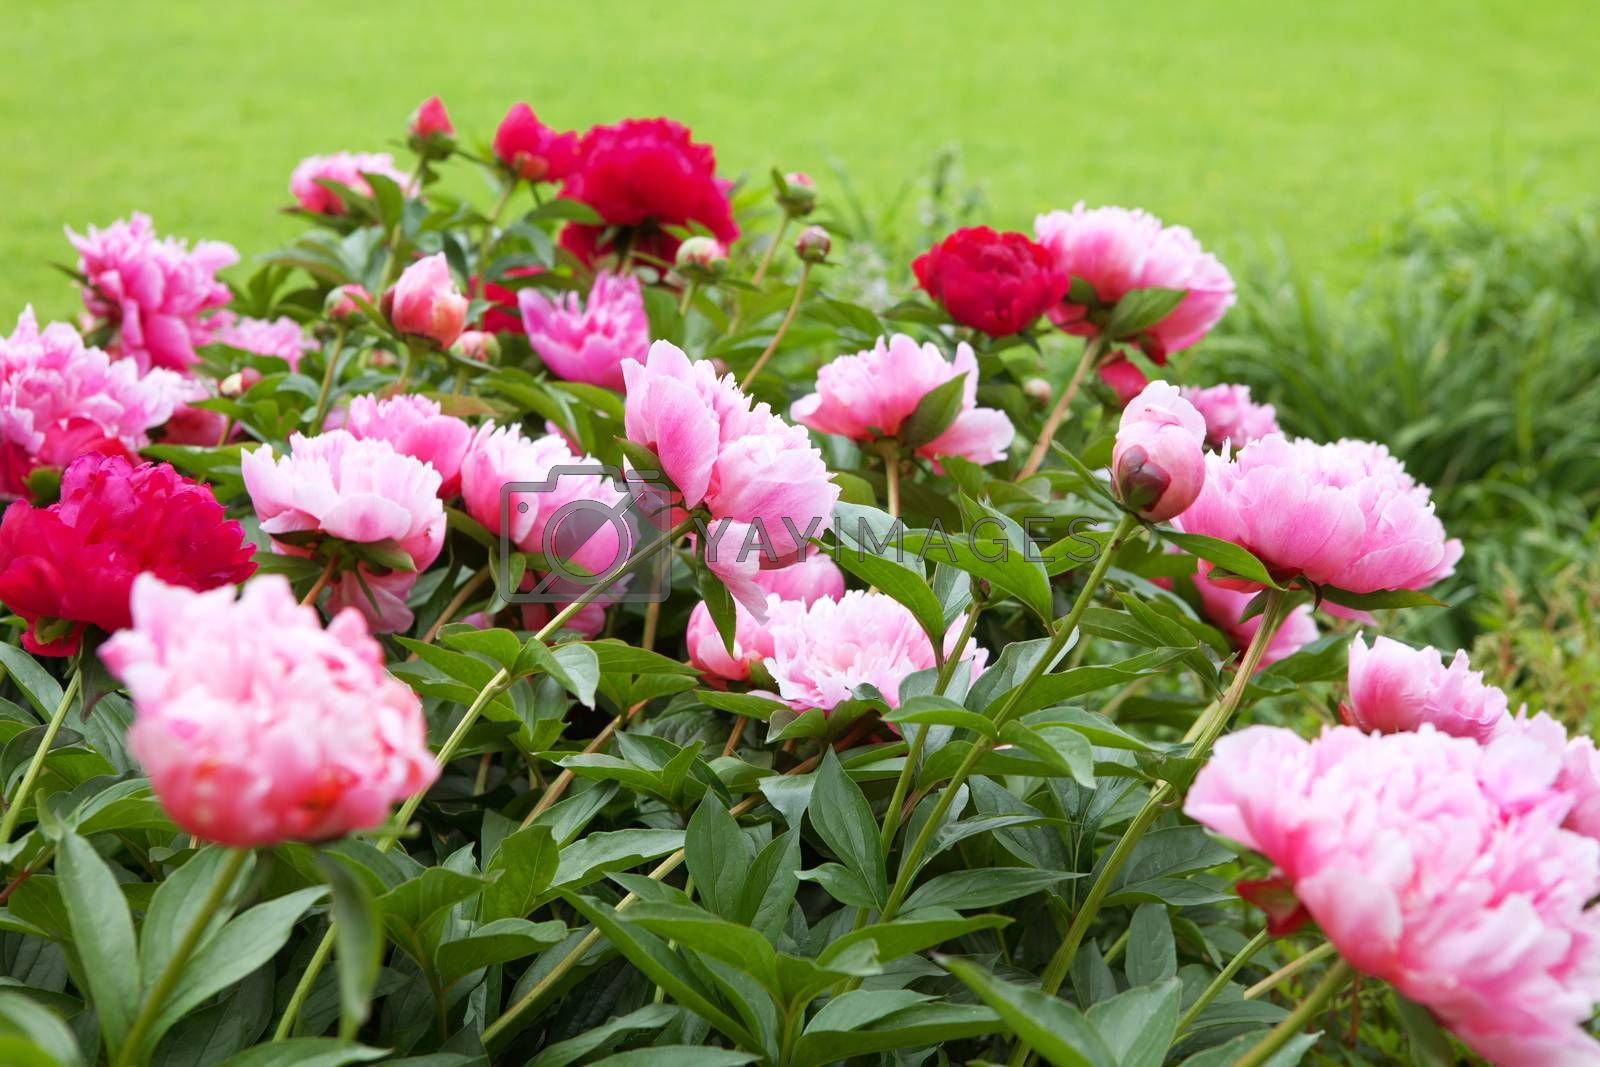 peonies on the green field in summer